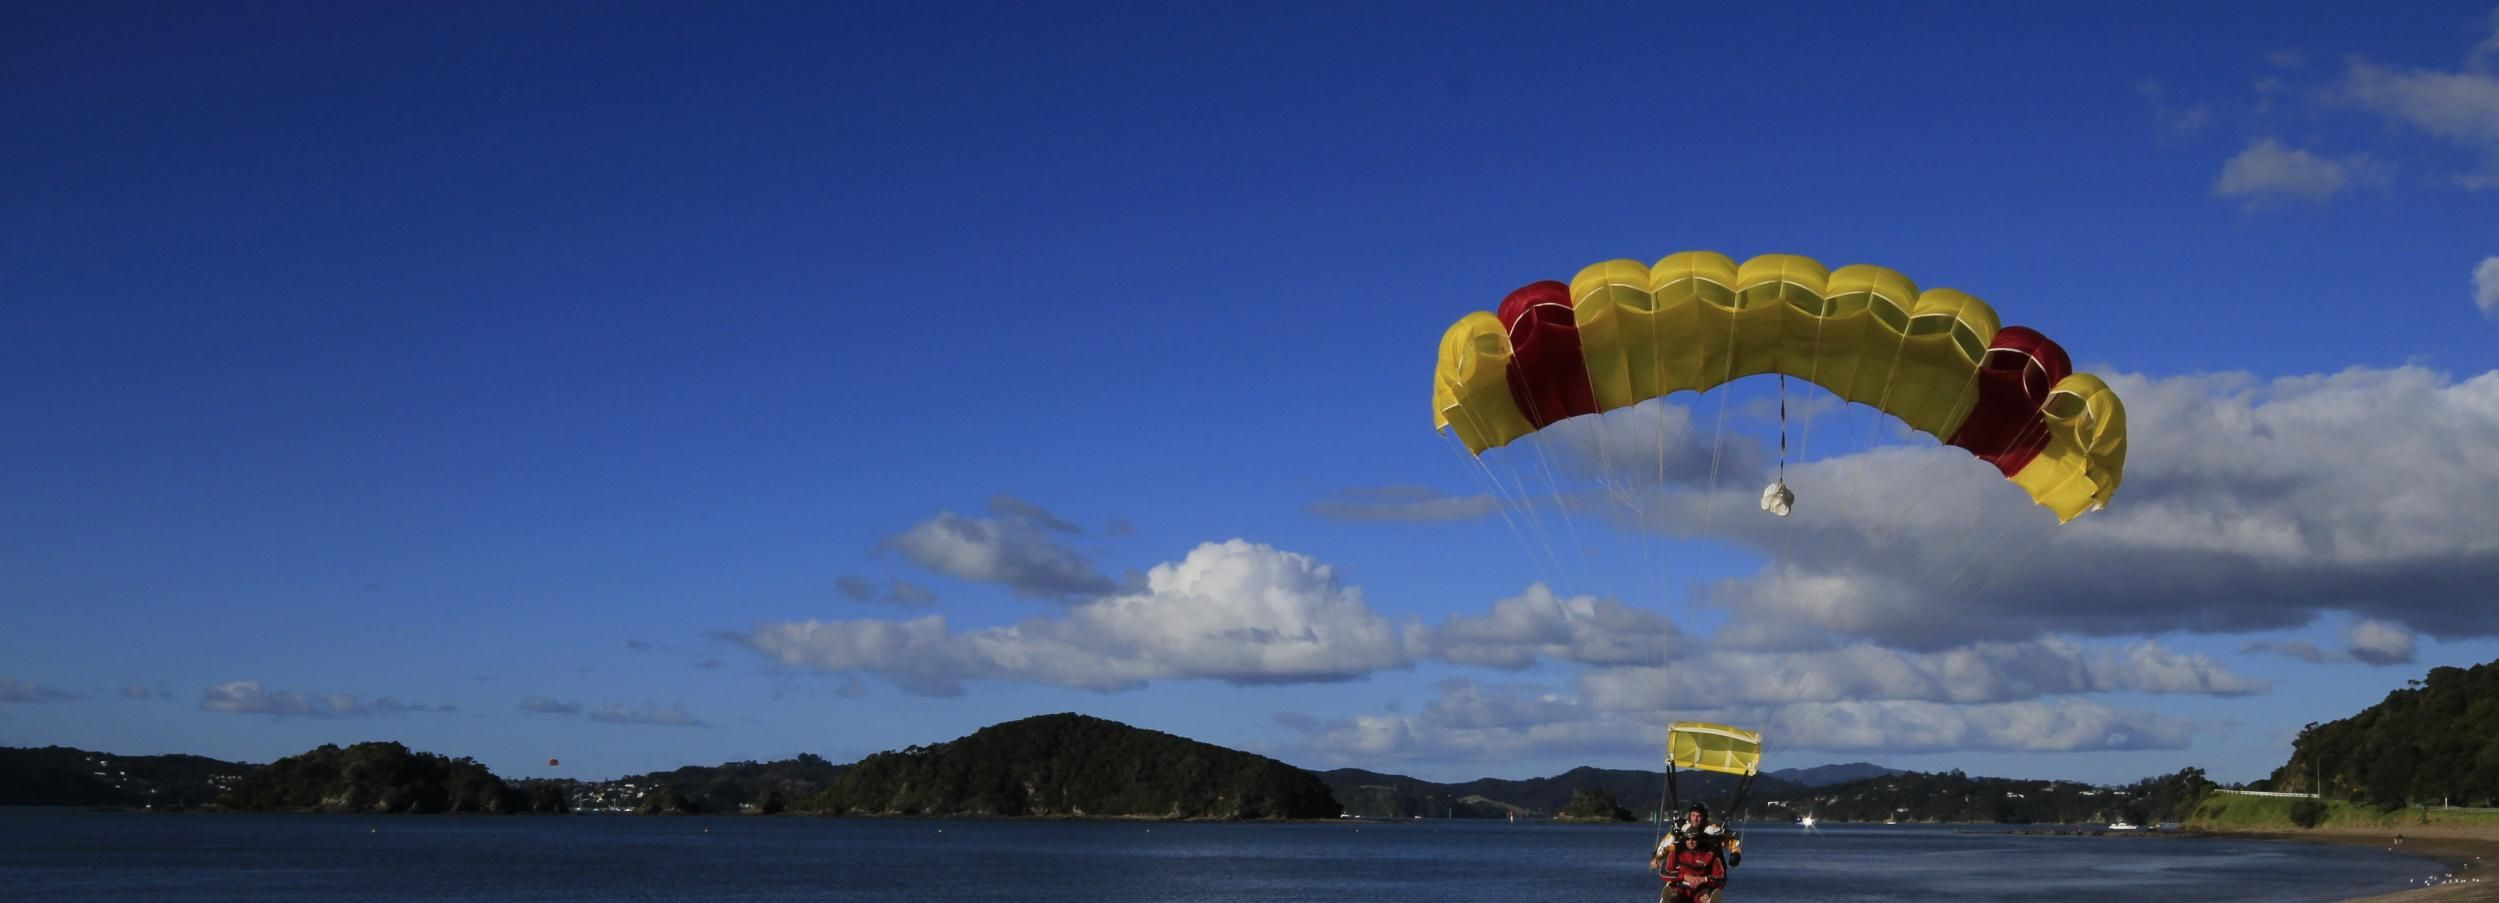 Bay of Islands: Tandem Skydive Experience